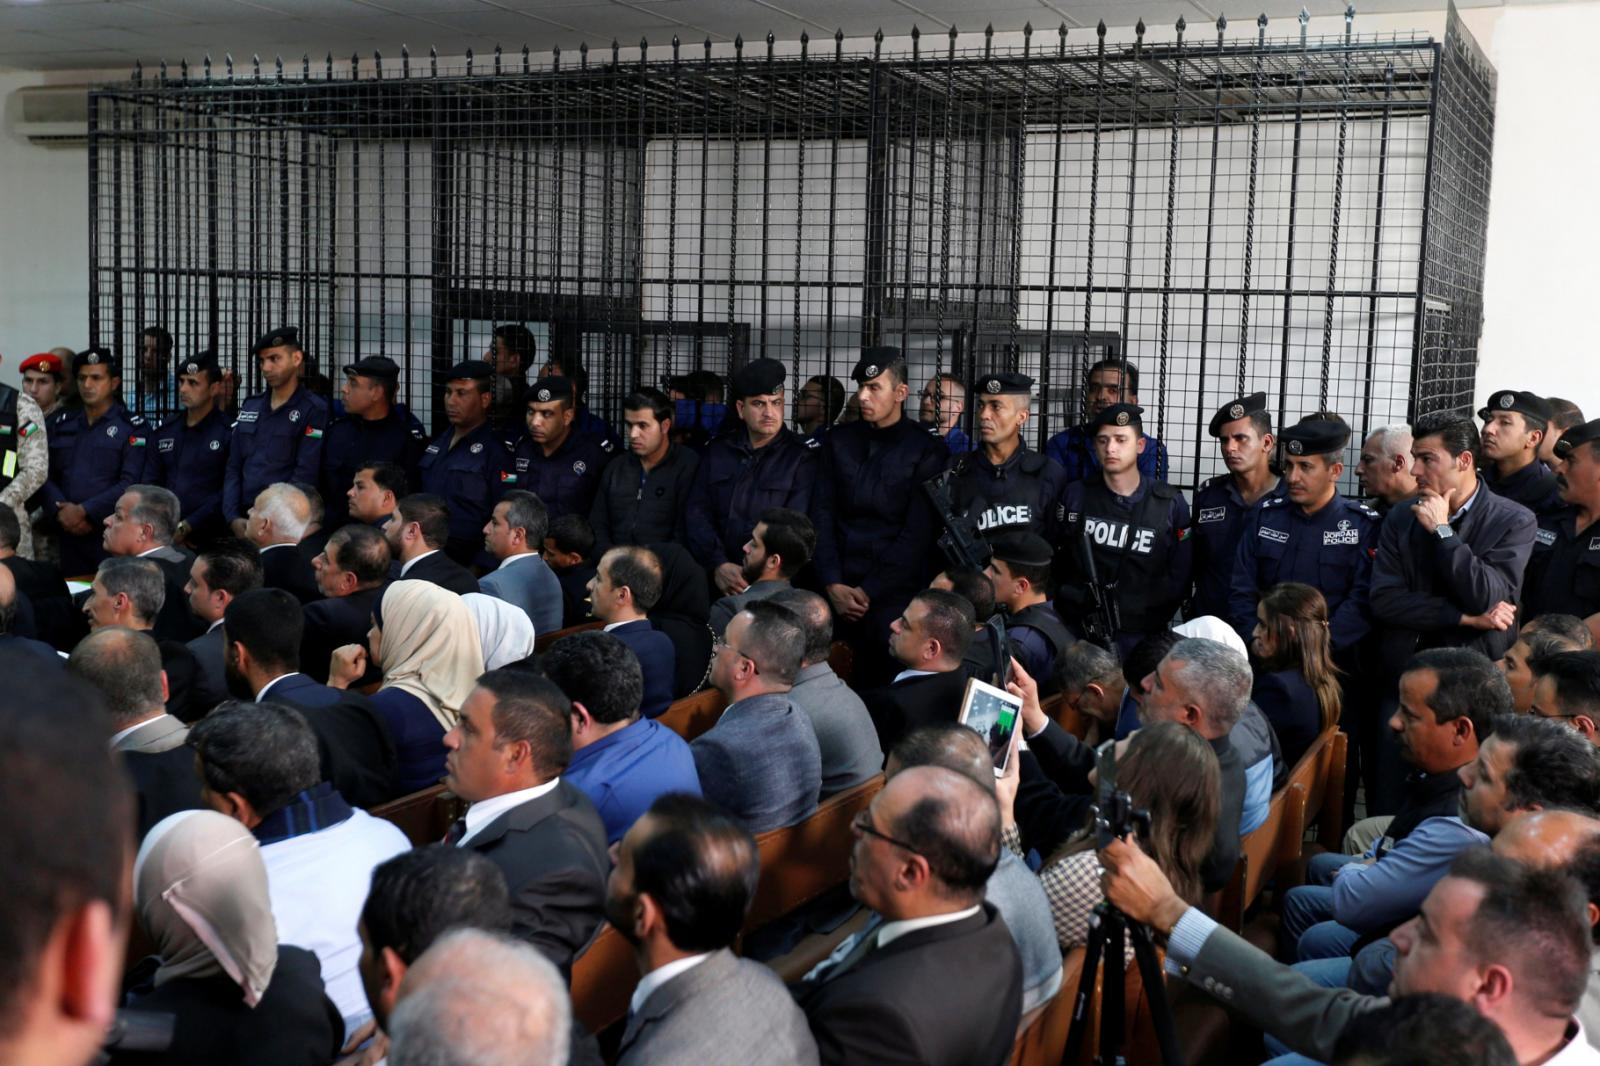 The businessmen and customs officials charged with tax evasion are seen behind bars at the State Security Court in Amman, Jordan, on March 12, 2019. REUTERS/Muhammad Hamed